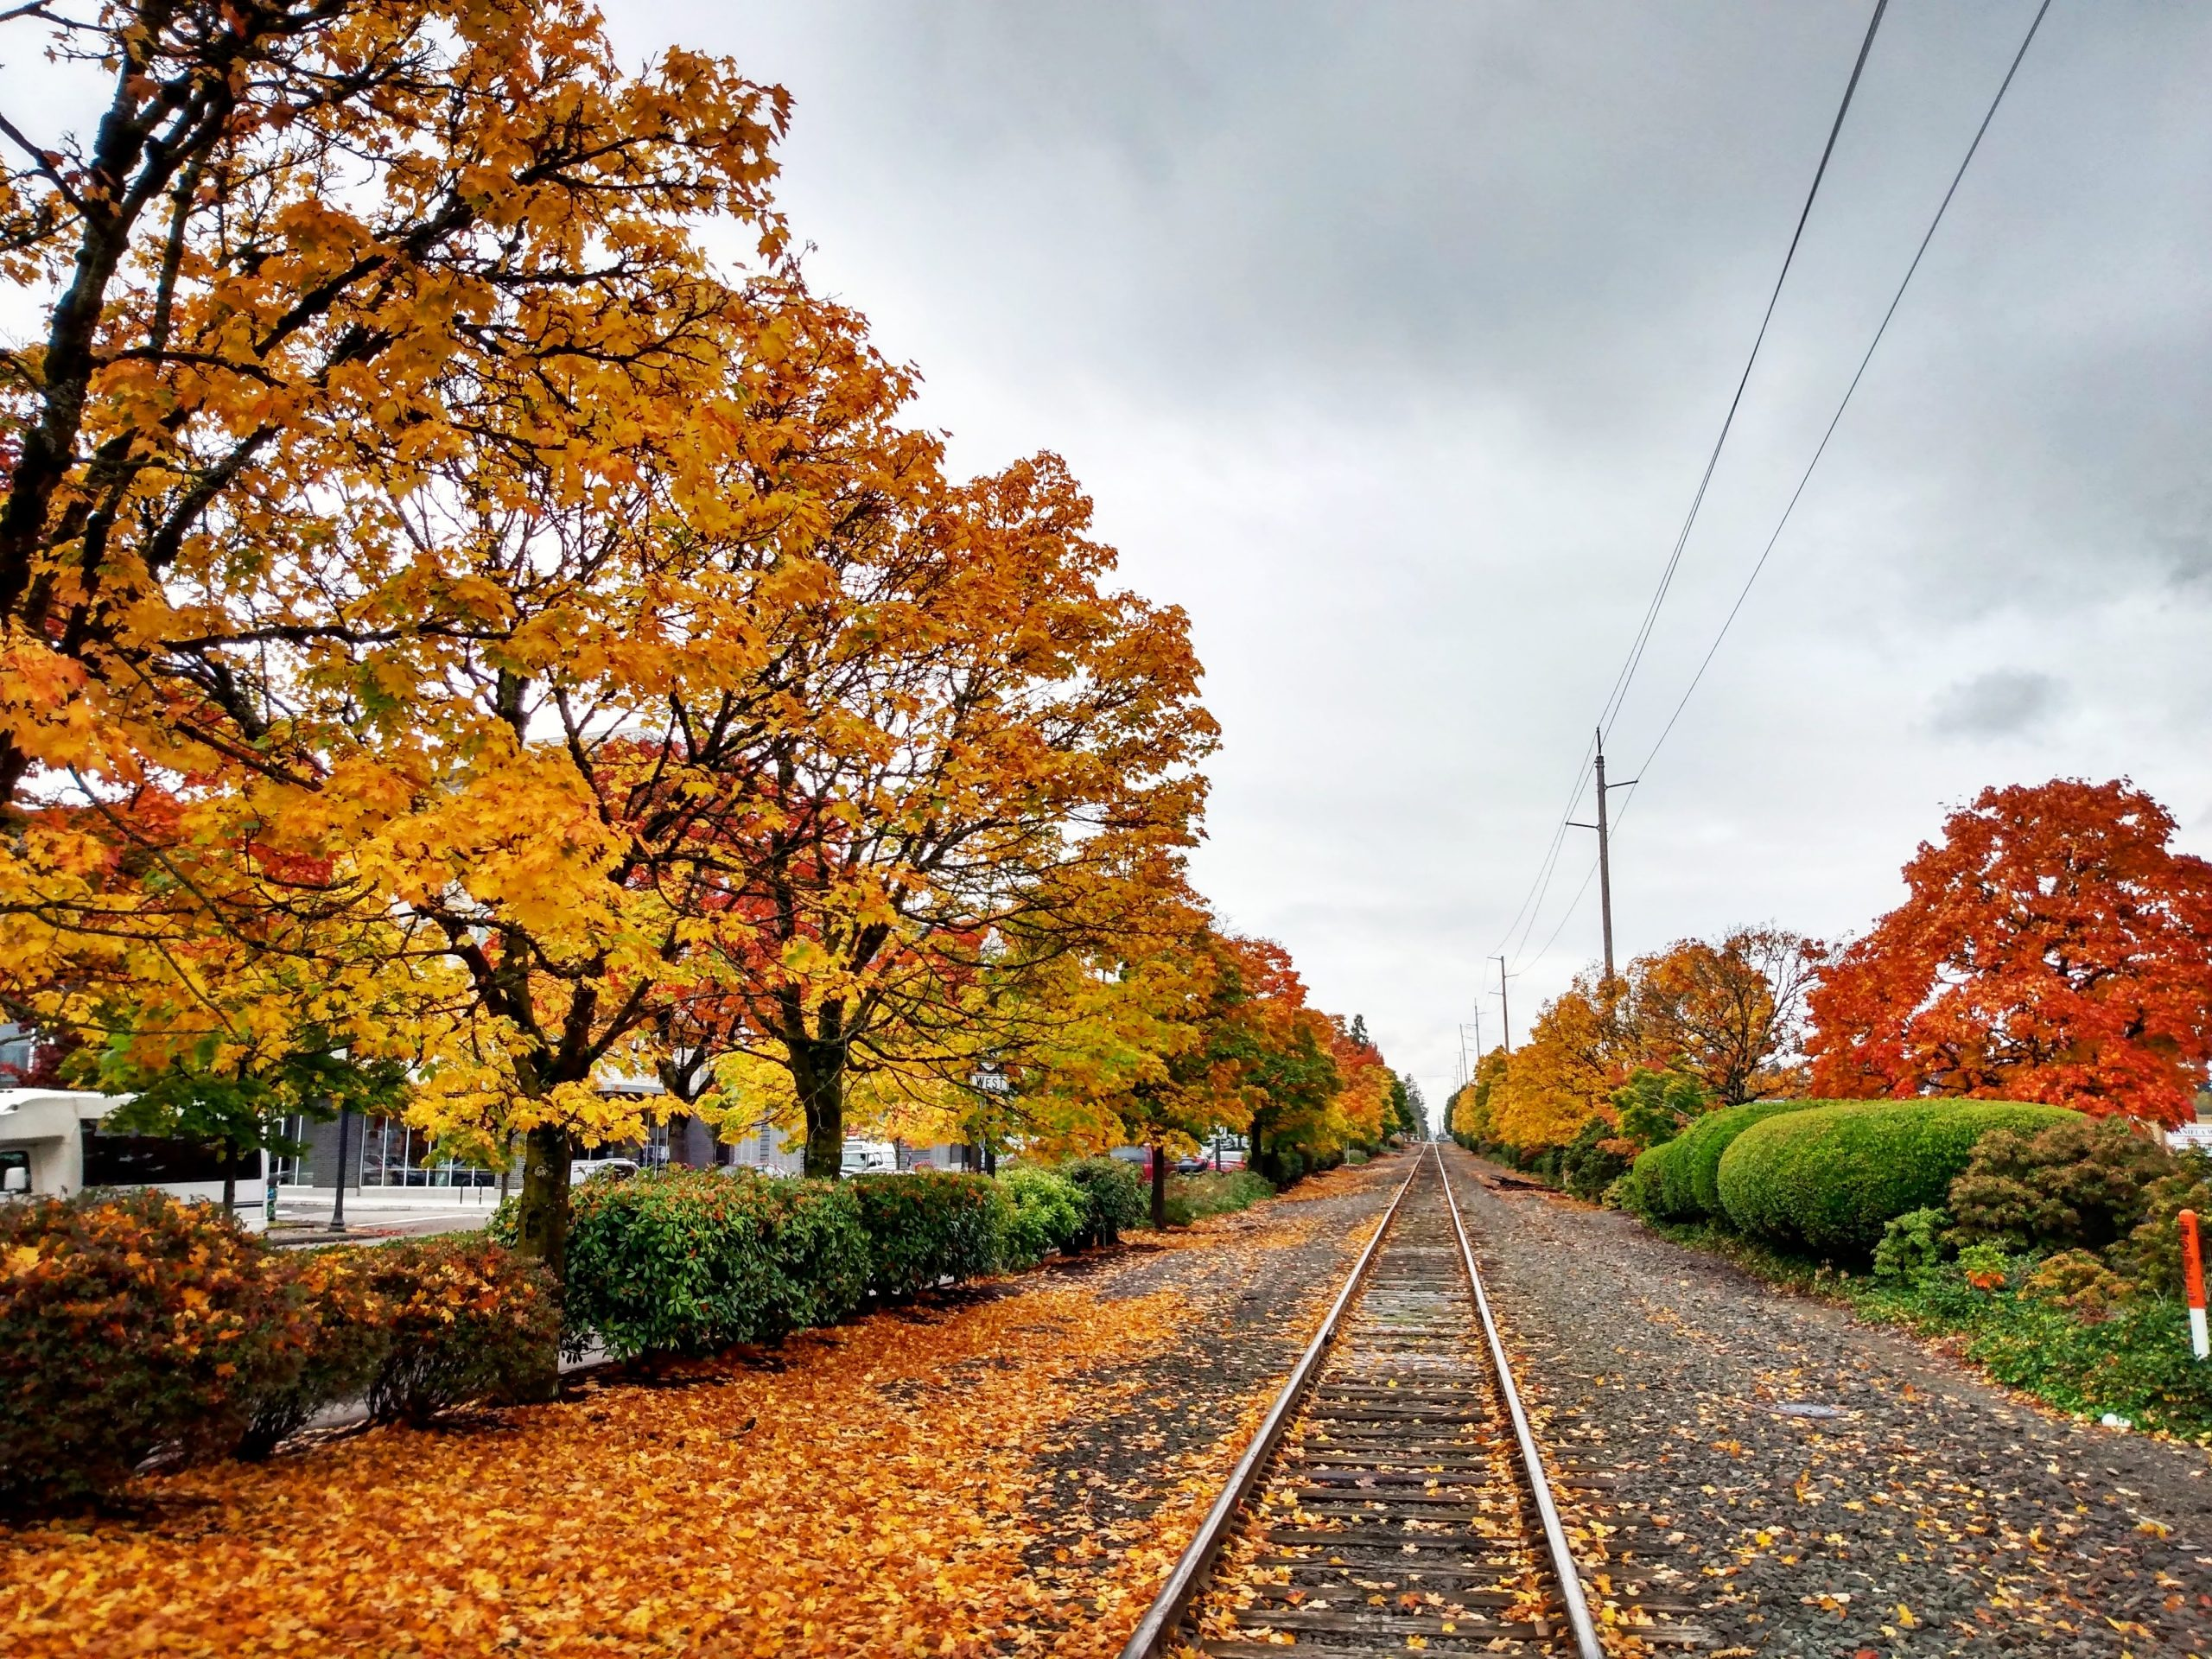 Trees and railroad tracks in the fall